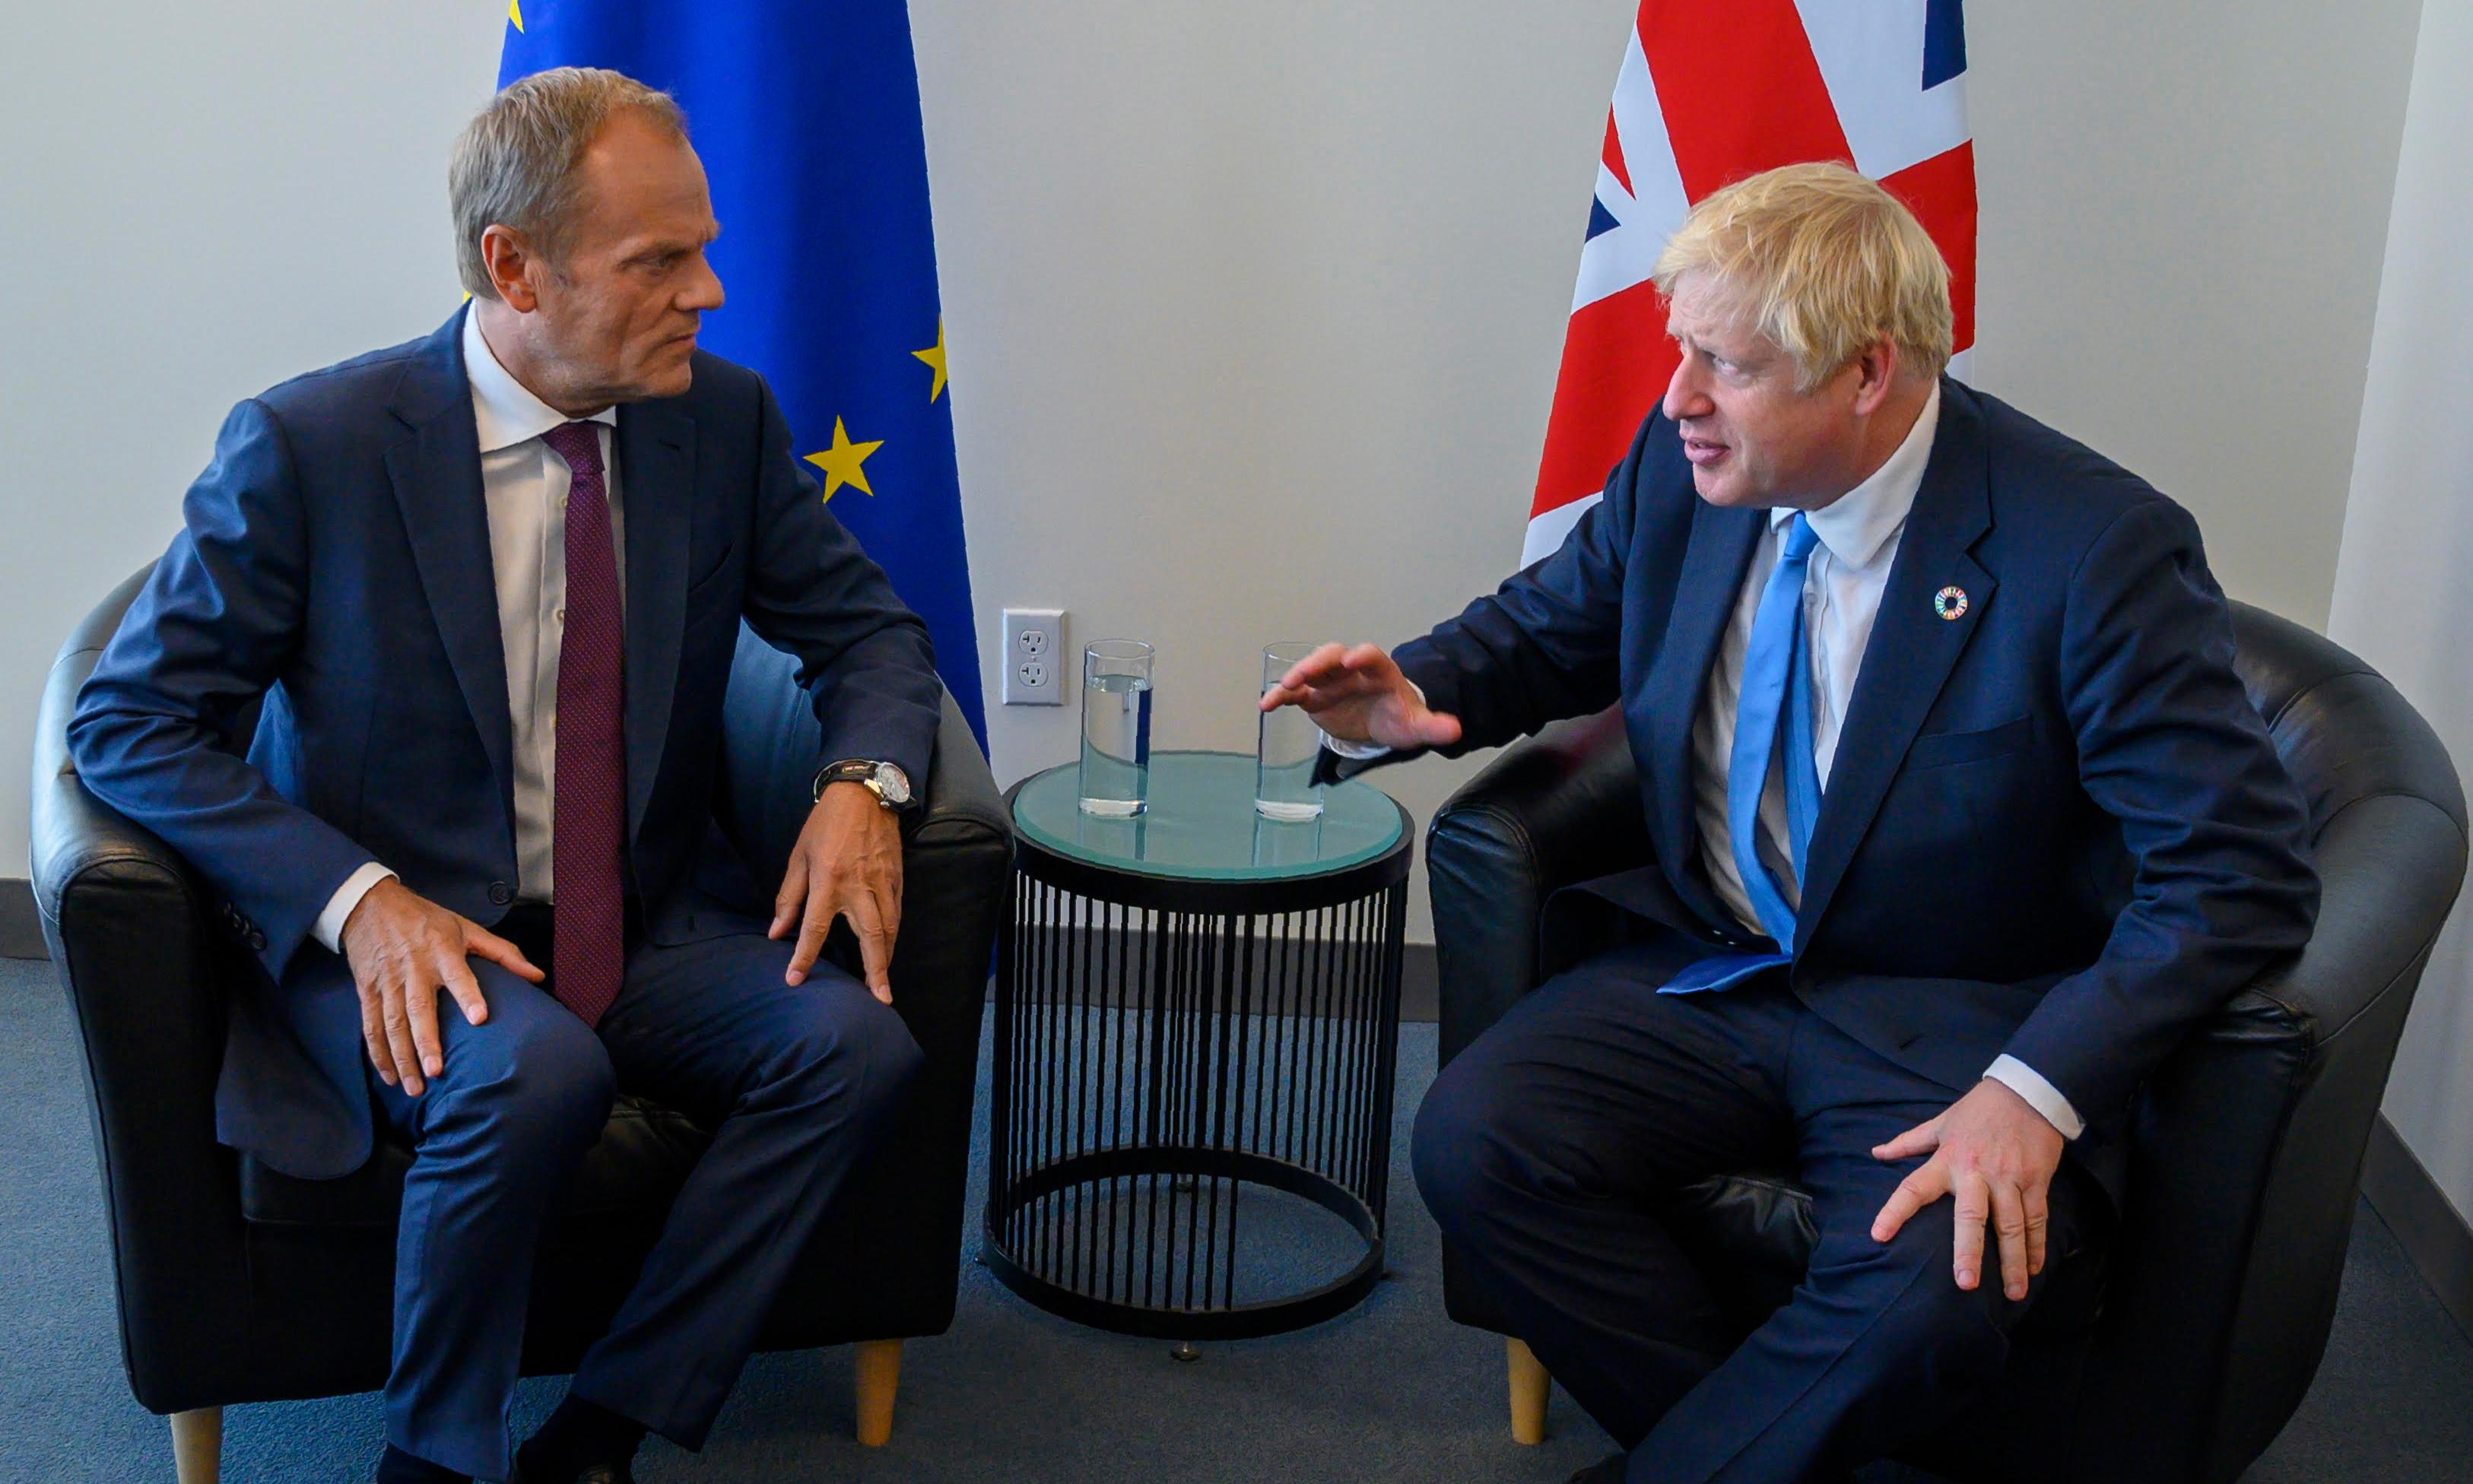 Brexit: Johnson sends unsigned letter asking for delay, and second arguing against it